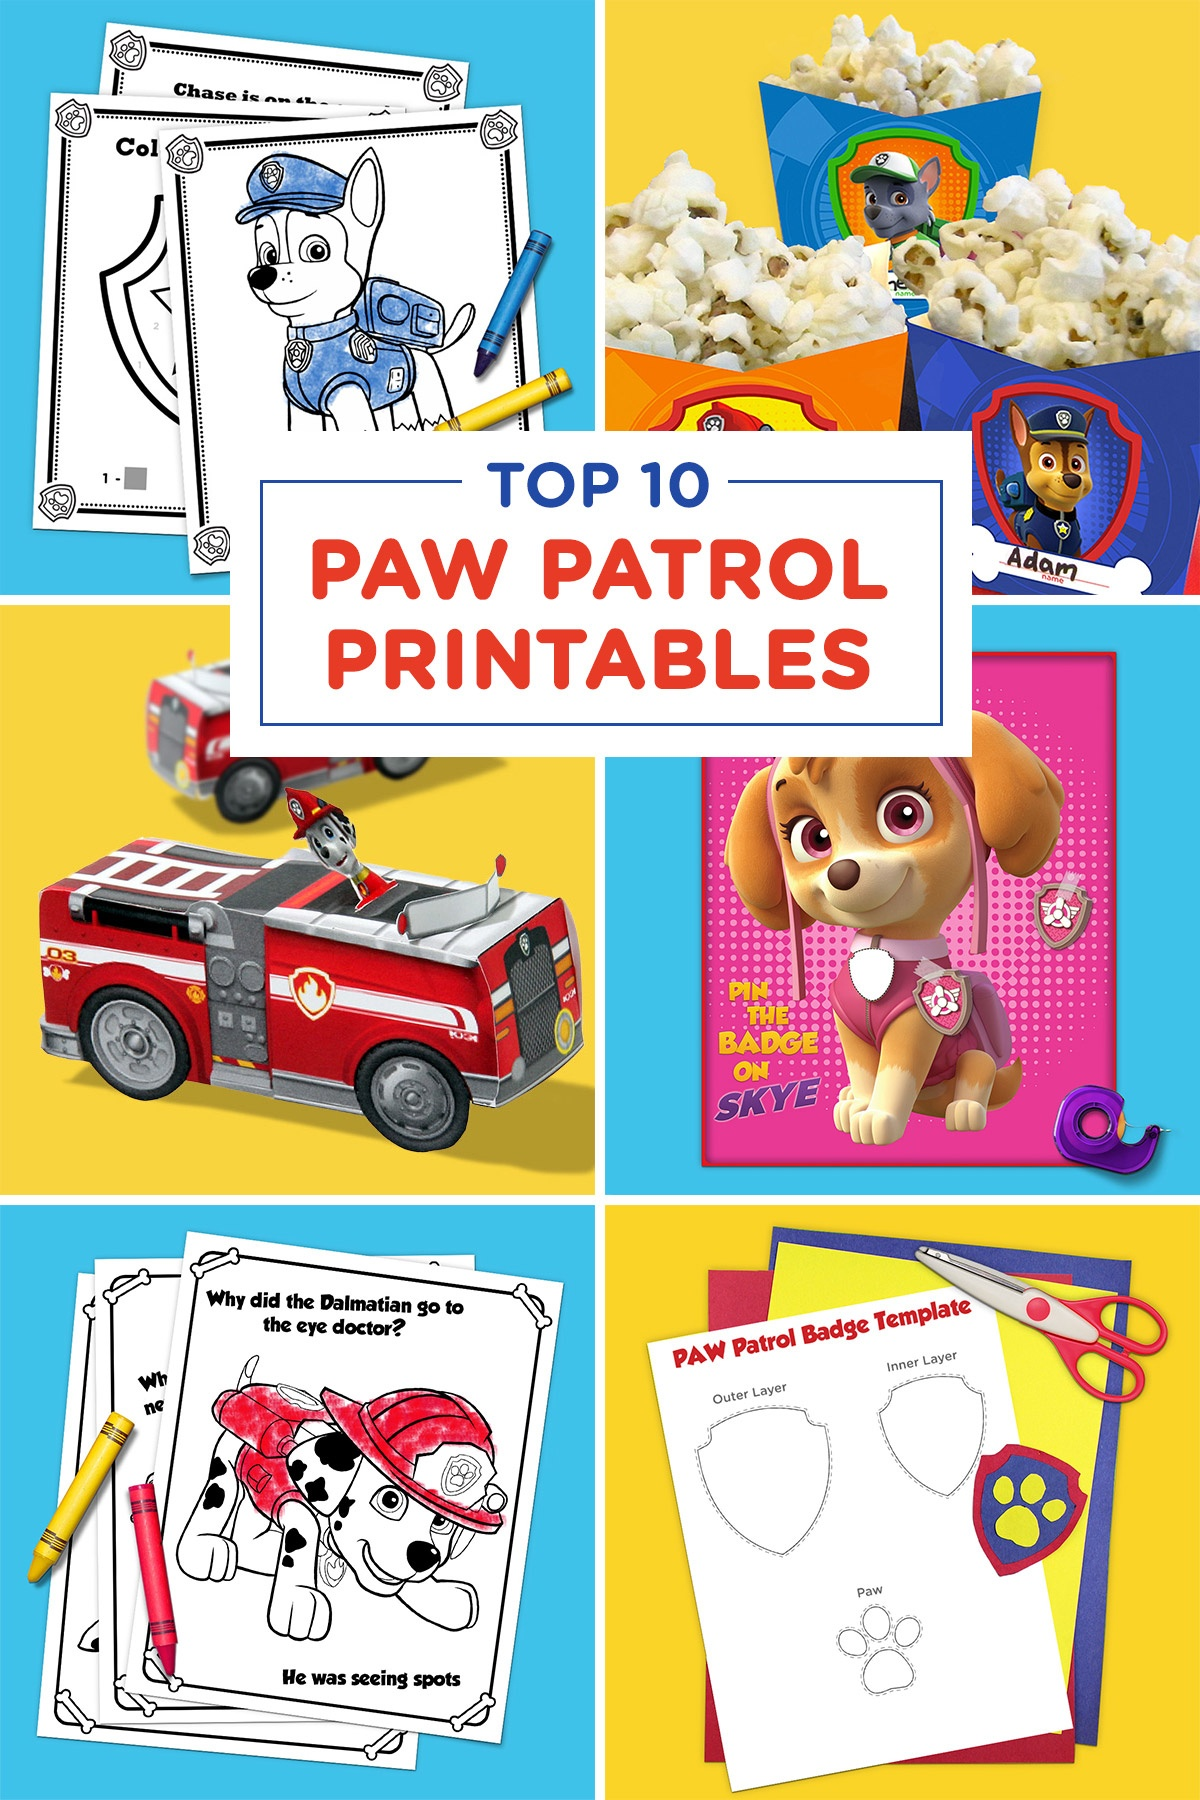 The Top 10 Paw Patrol Printables Of All Time | Nickelodeon Parents - Paw Patrol Free Printables